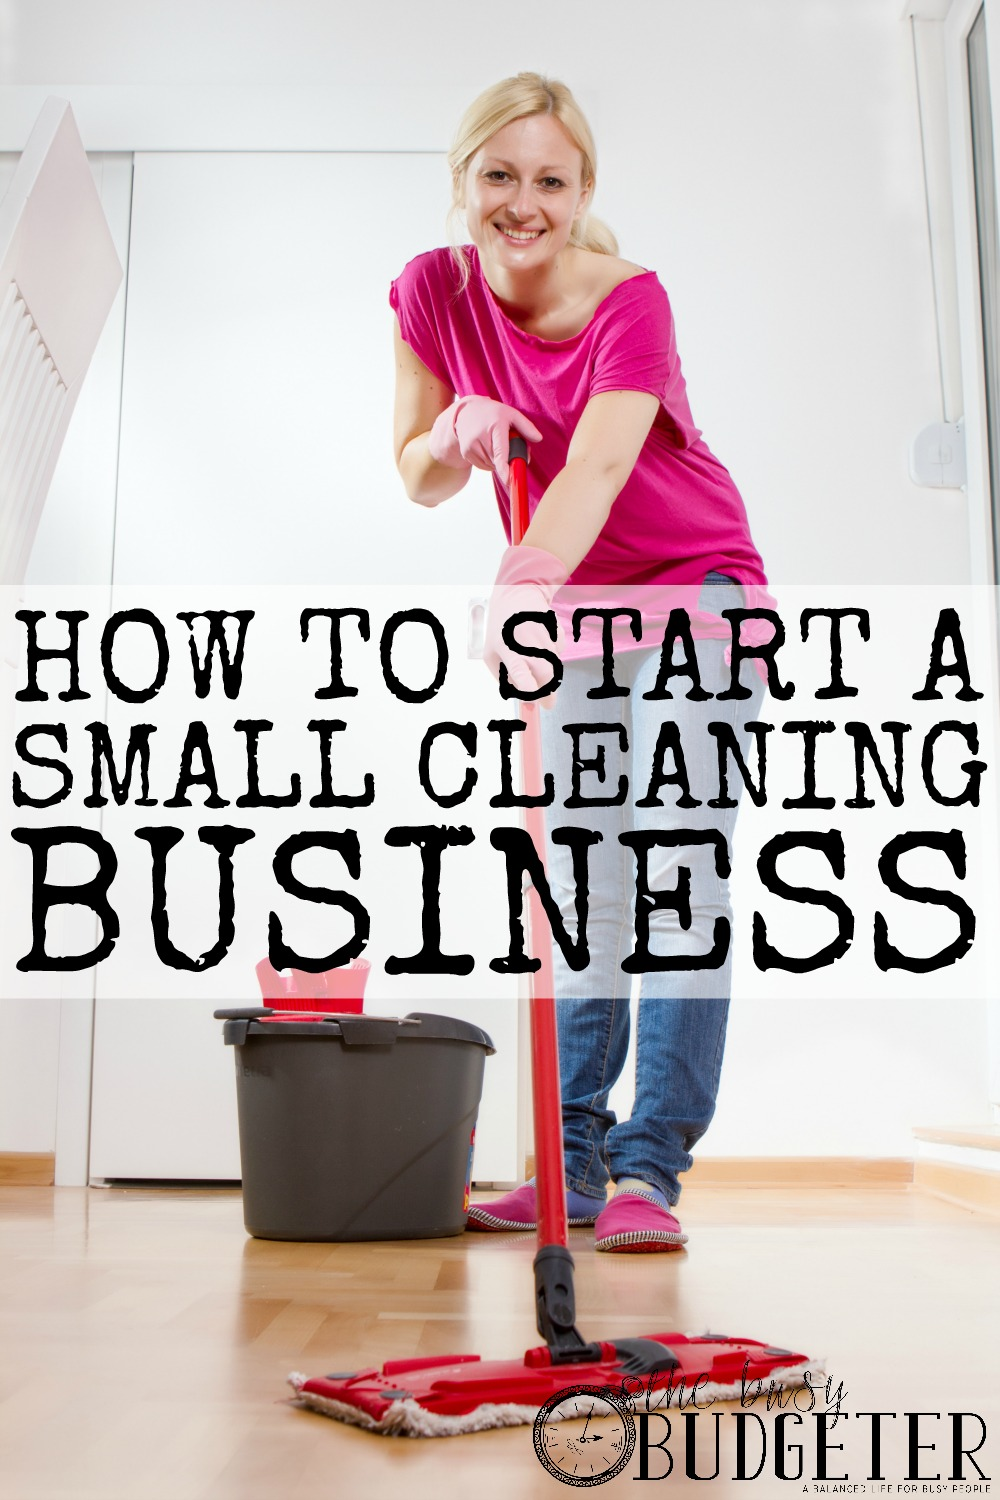 HOW TO START A SMALL CLEANING BUSINESS. How to start a small cleaning business. What a great idea! I could easily do this during the day while the kids are in school and I'm always looking for ways to make a little extra money!